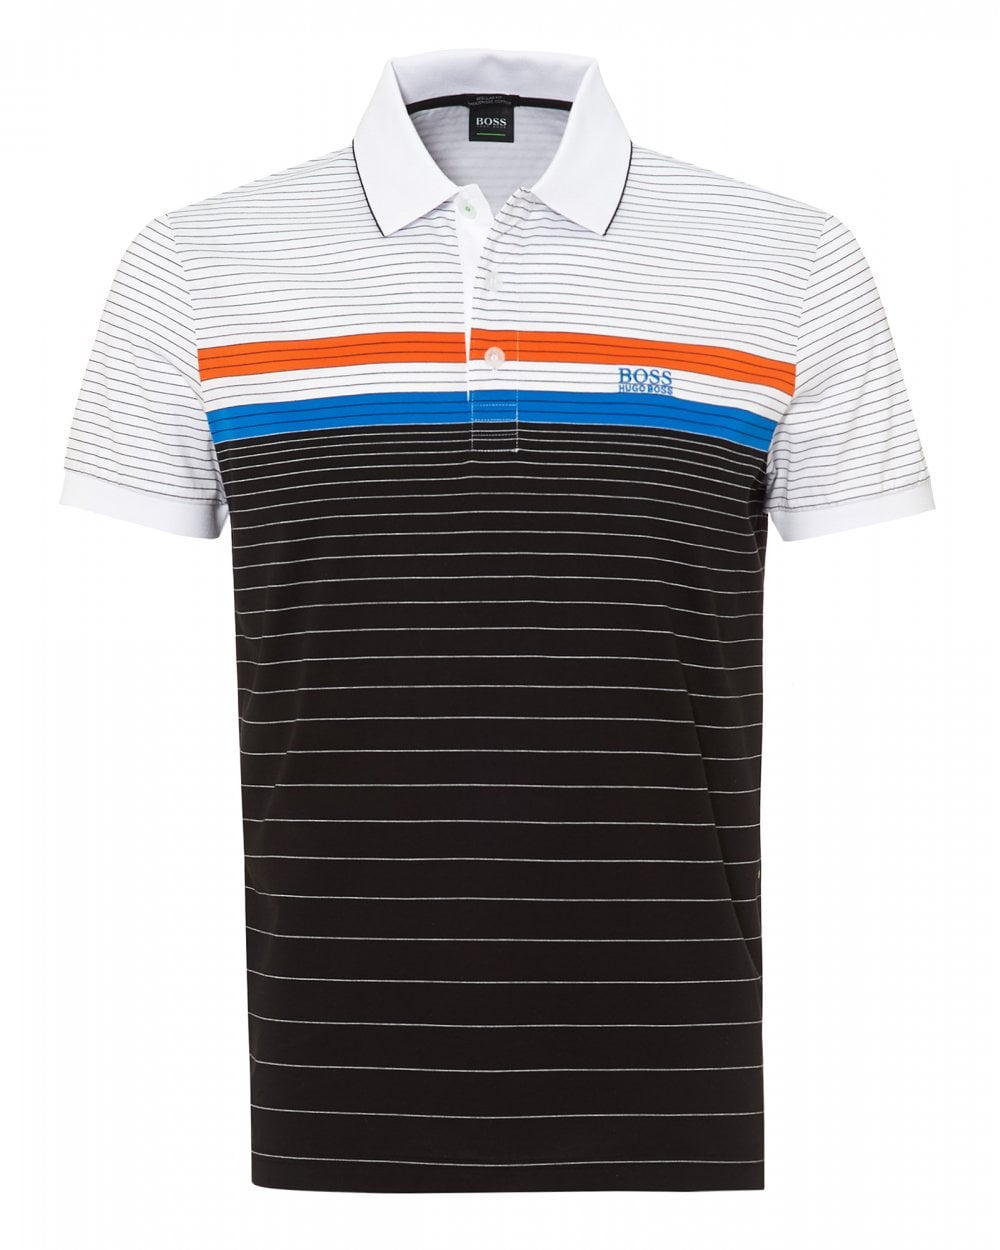 24ff5b142 BOSS Athleisure Mens Paddy 3 Polo Shirt, Fine Stripe Black Polo